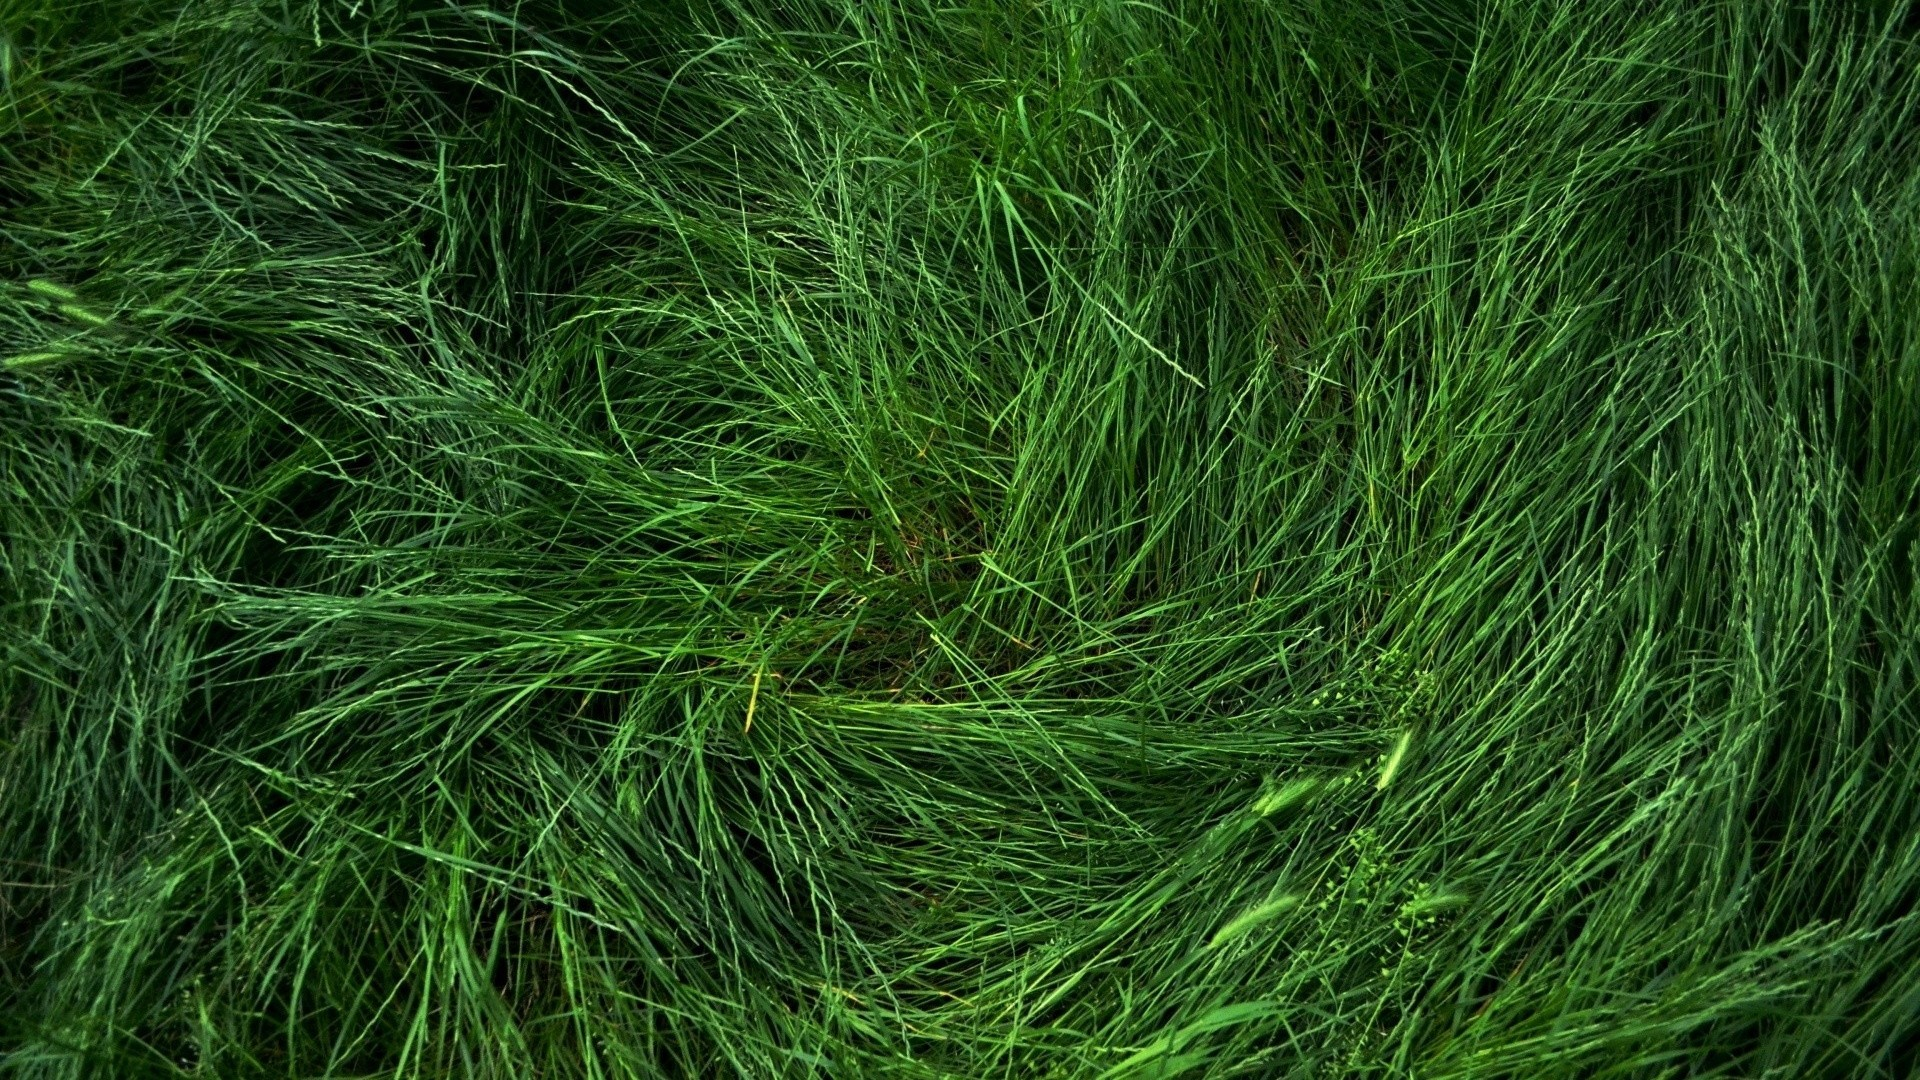 Seagrass Free Wallpaper